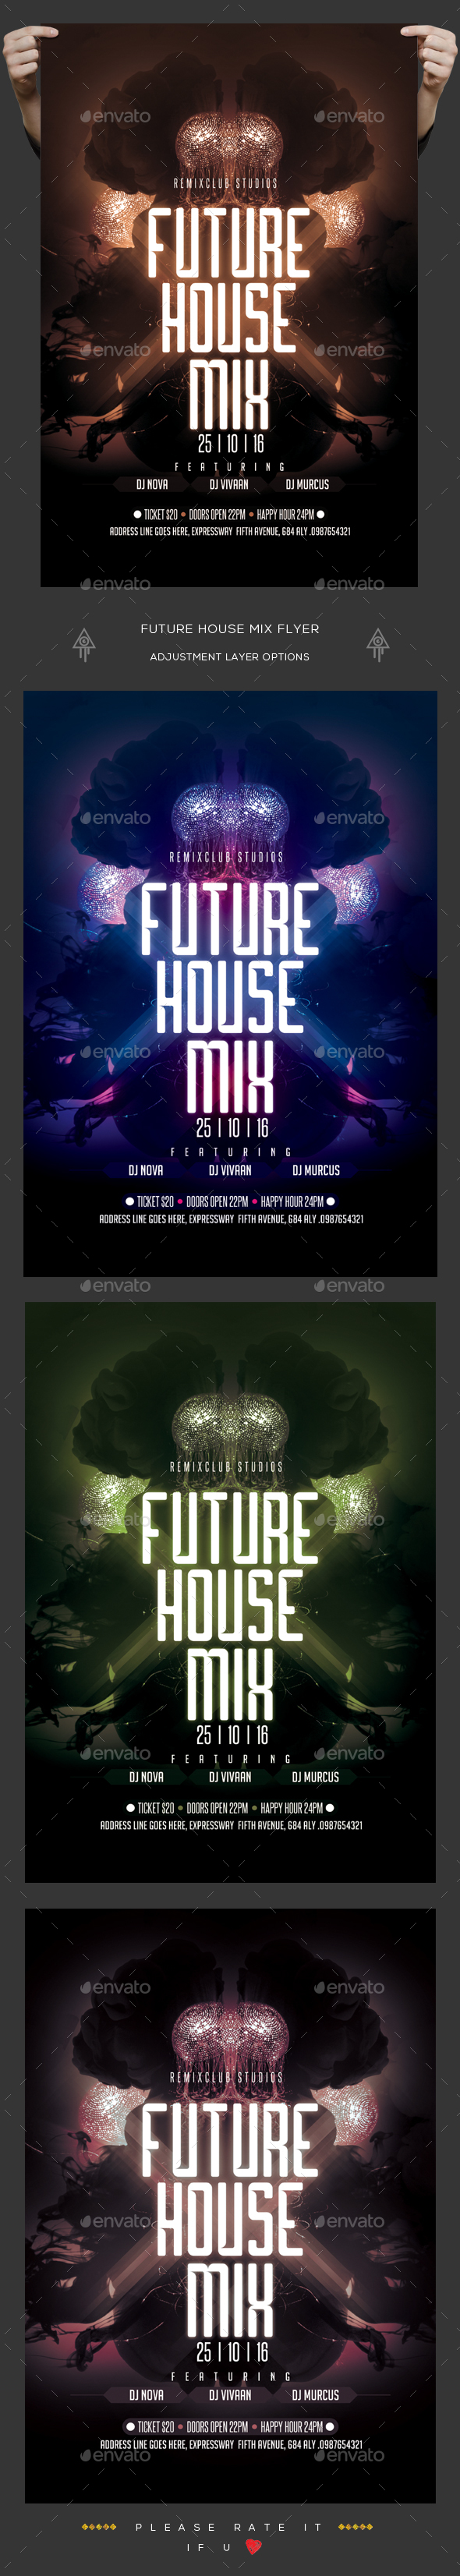 Future House Mix Flyer - Clubs & Parties Events